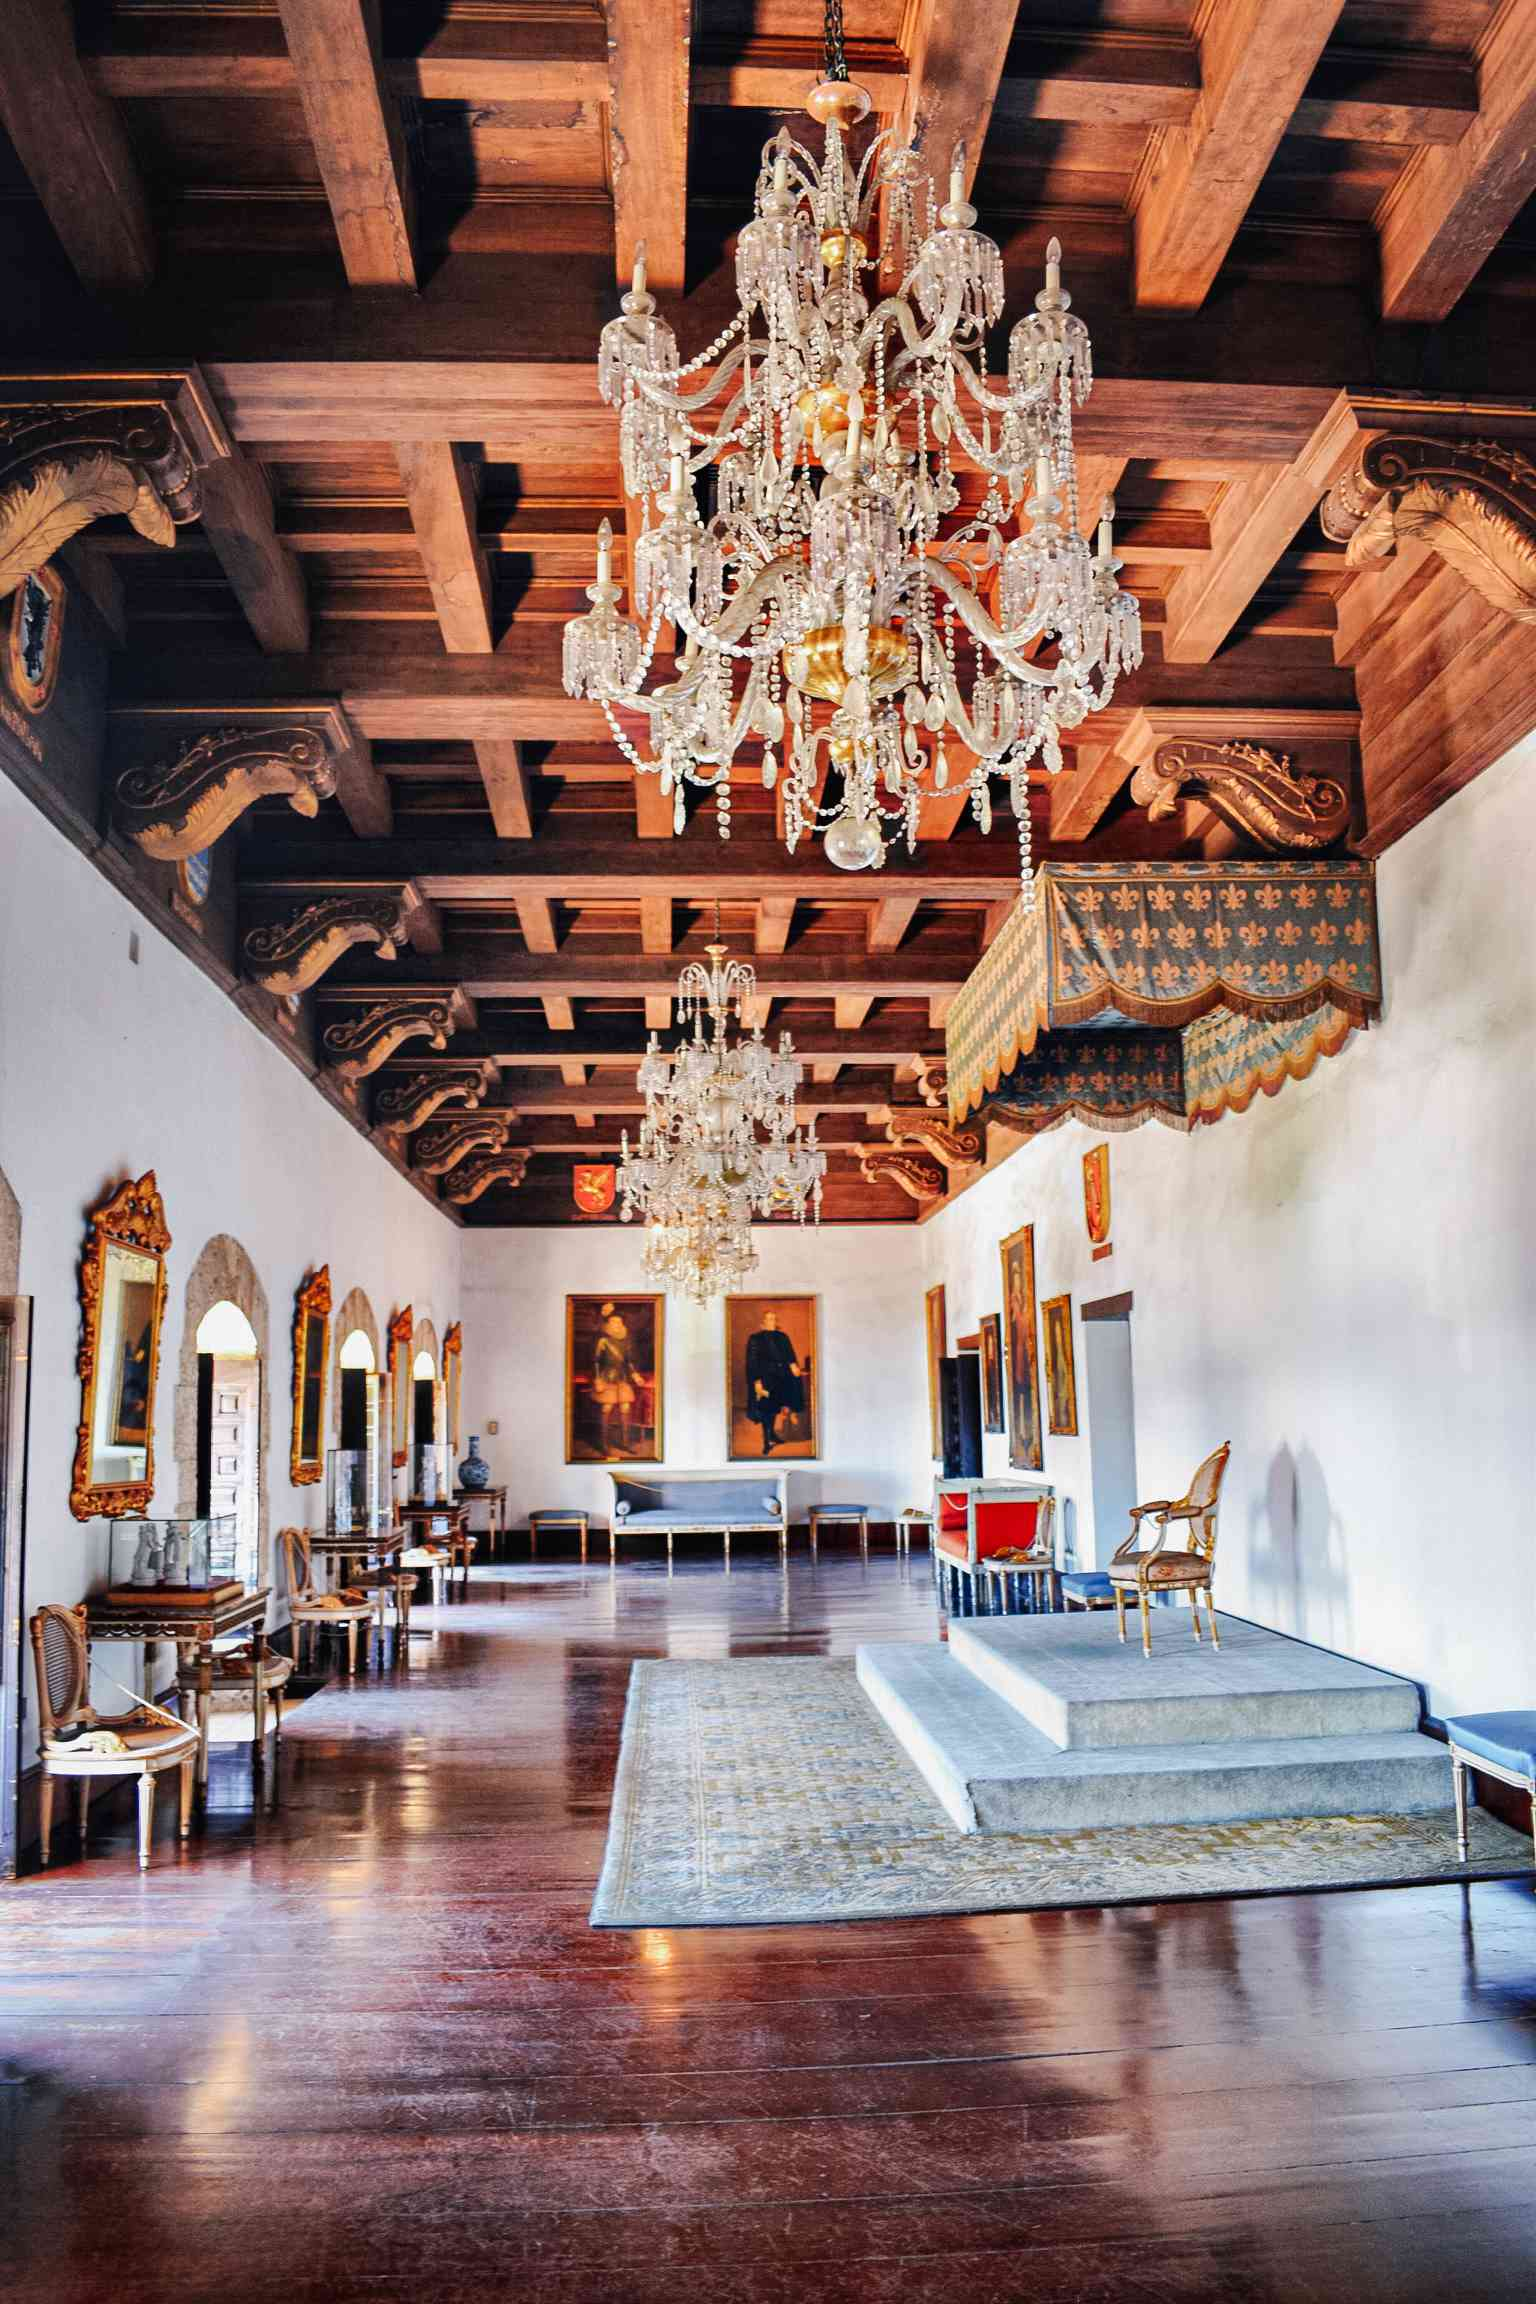 Inside the Casa Reales